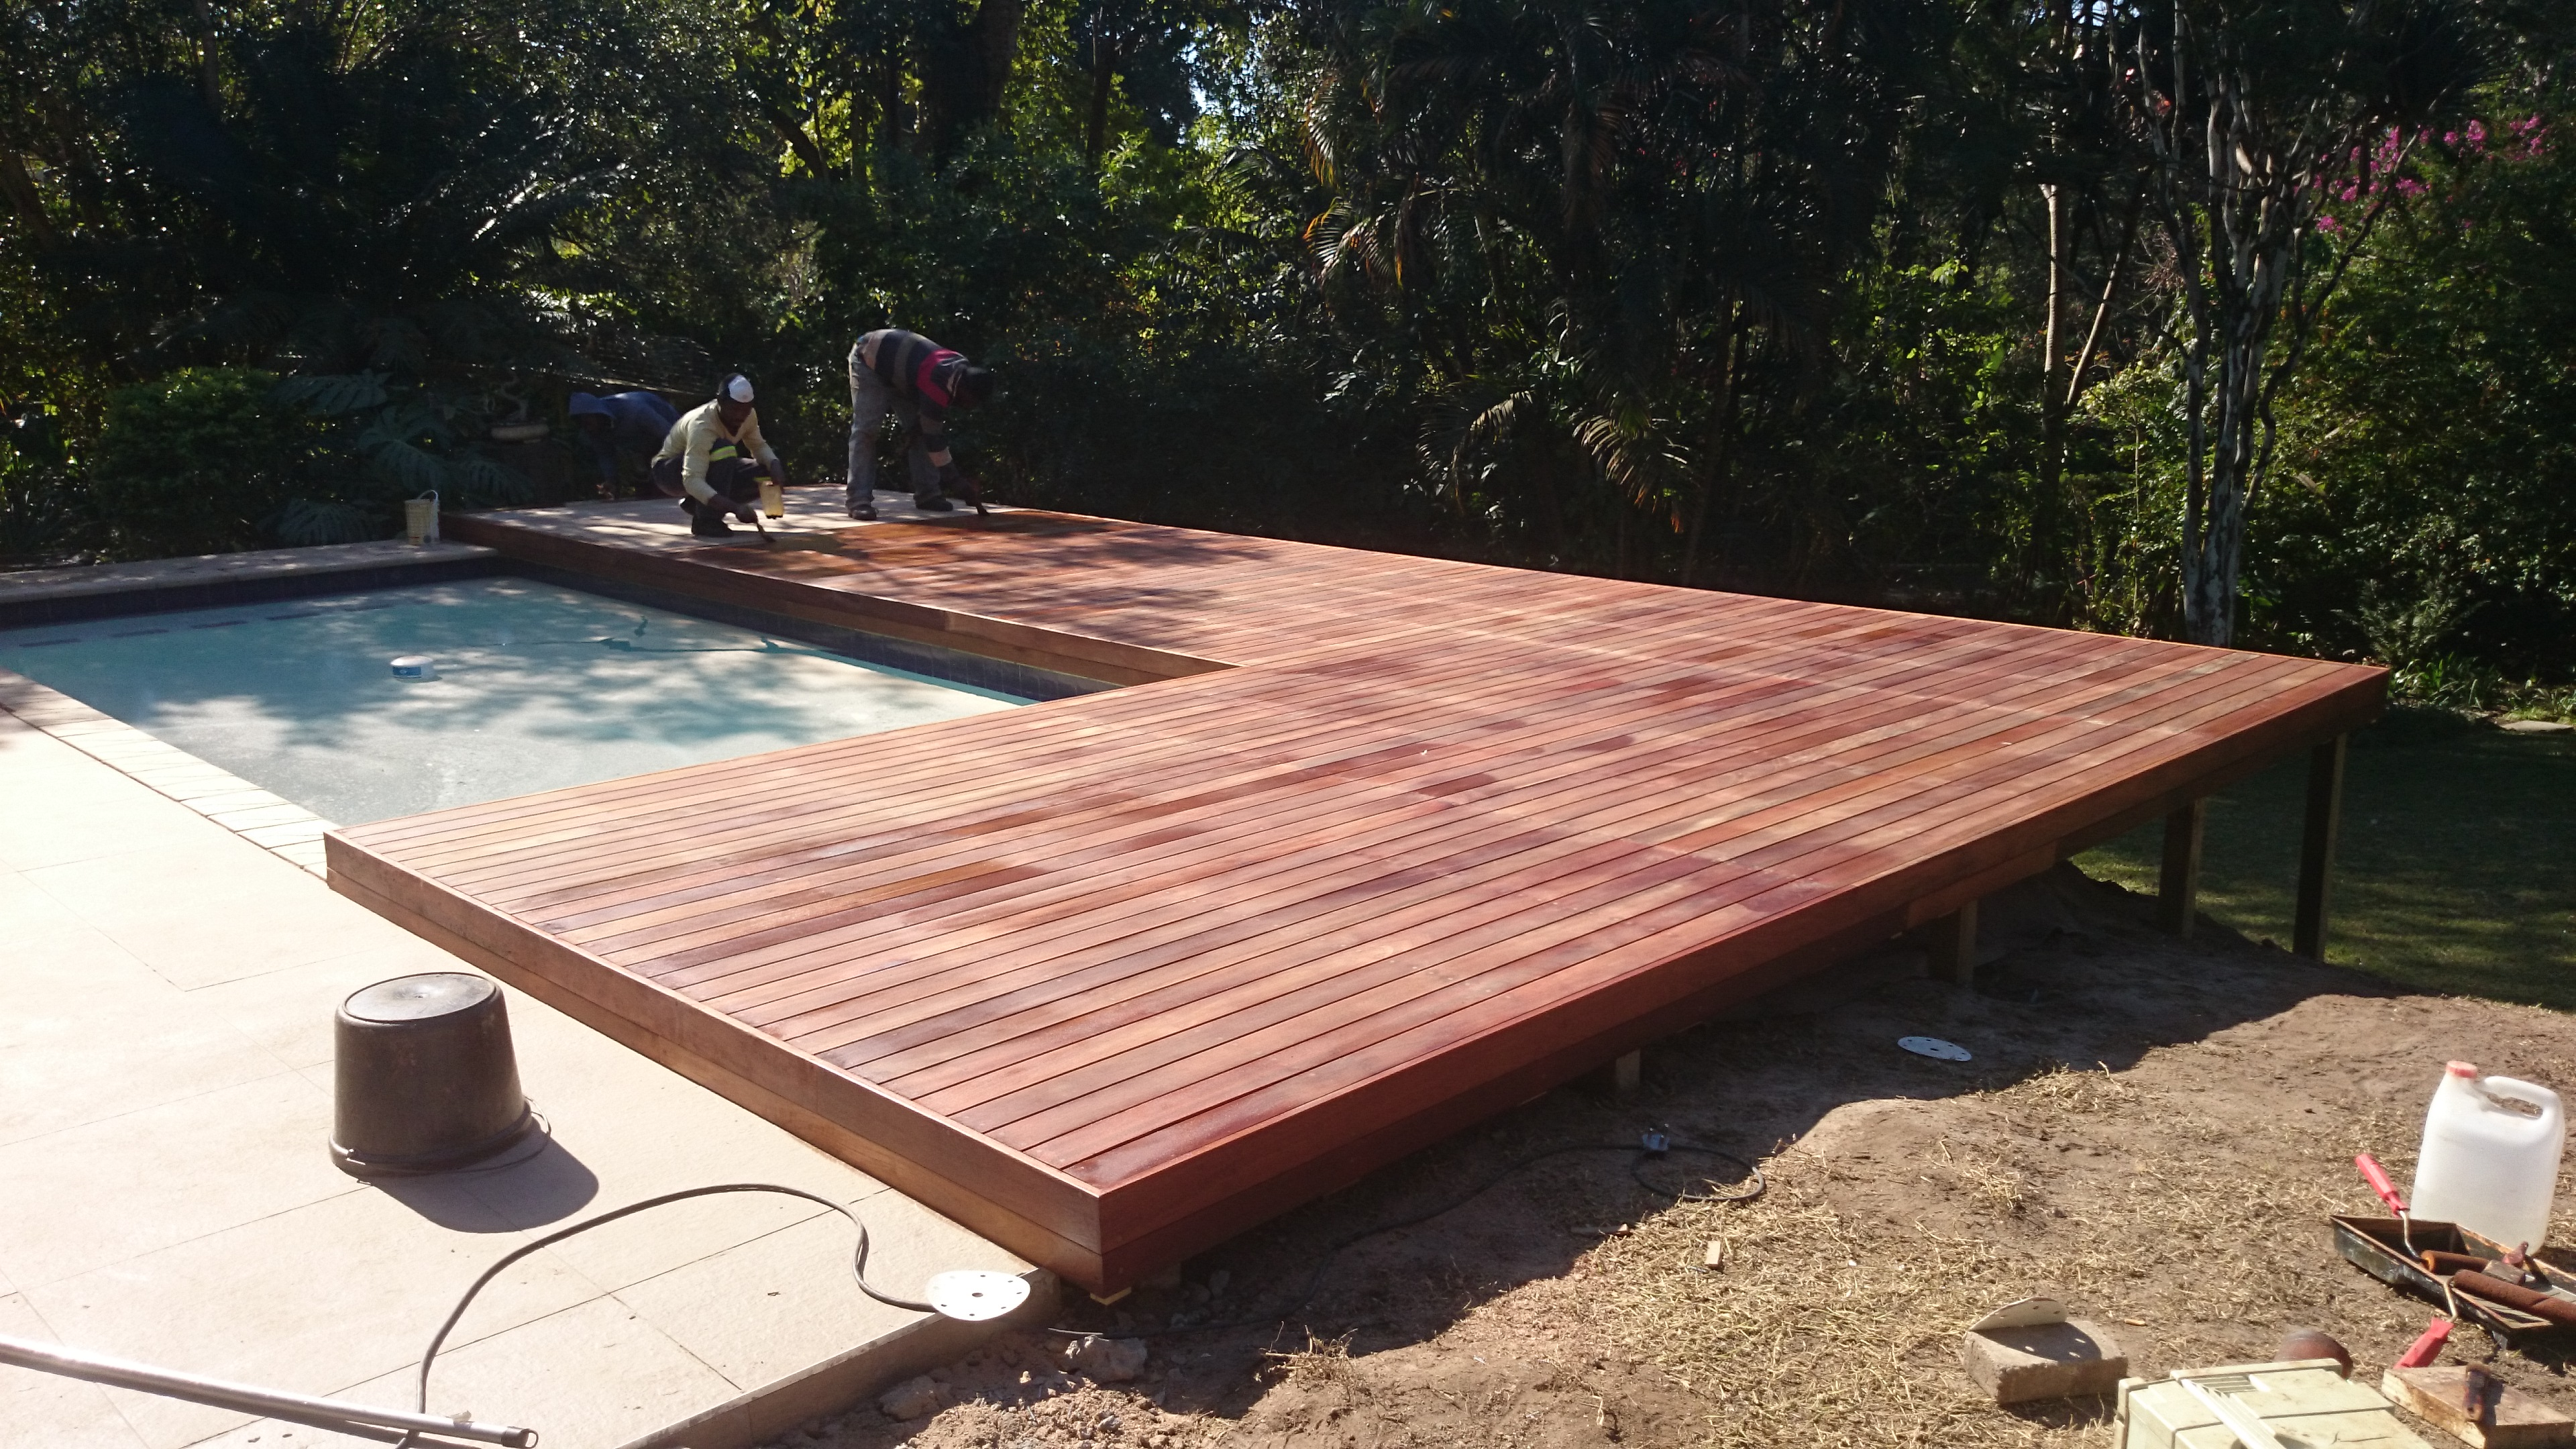 Upper highway the wood joint wooden decks and floors for Sundeck flooring